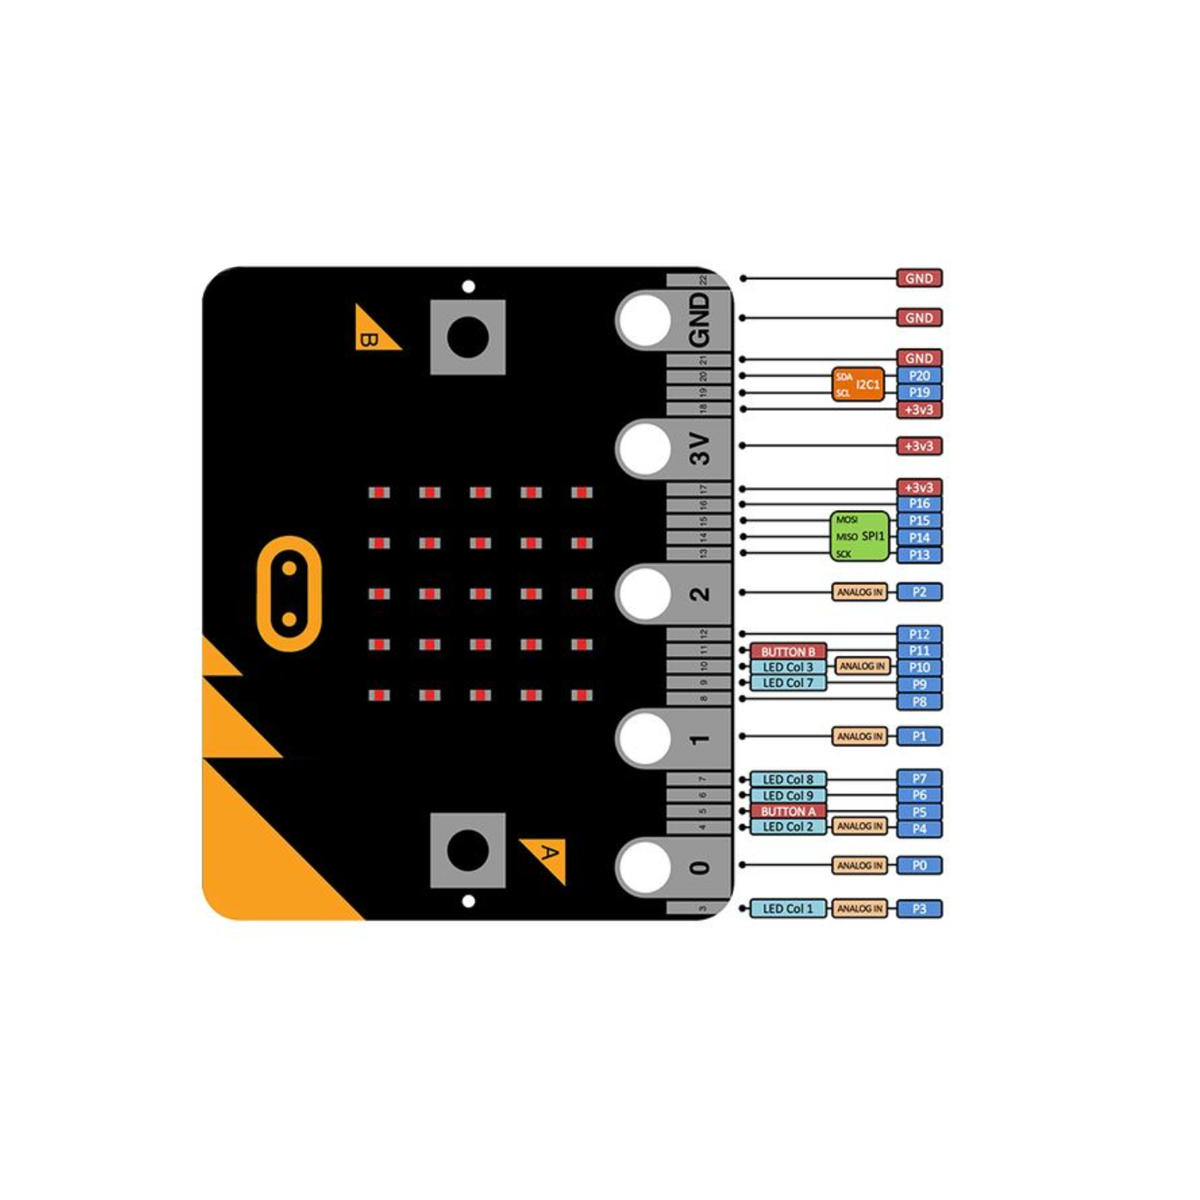 micro:bit BBC Educational Programming Controller microbit